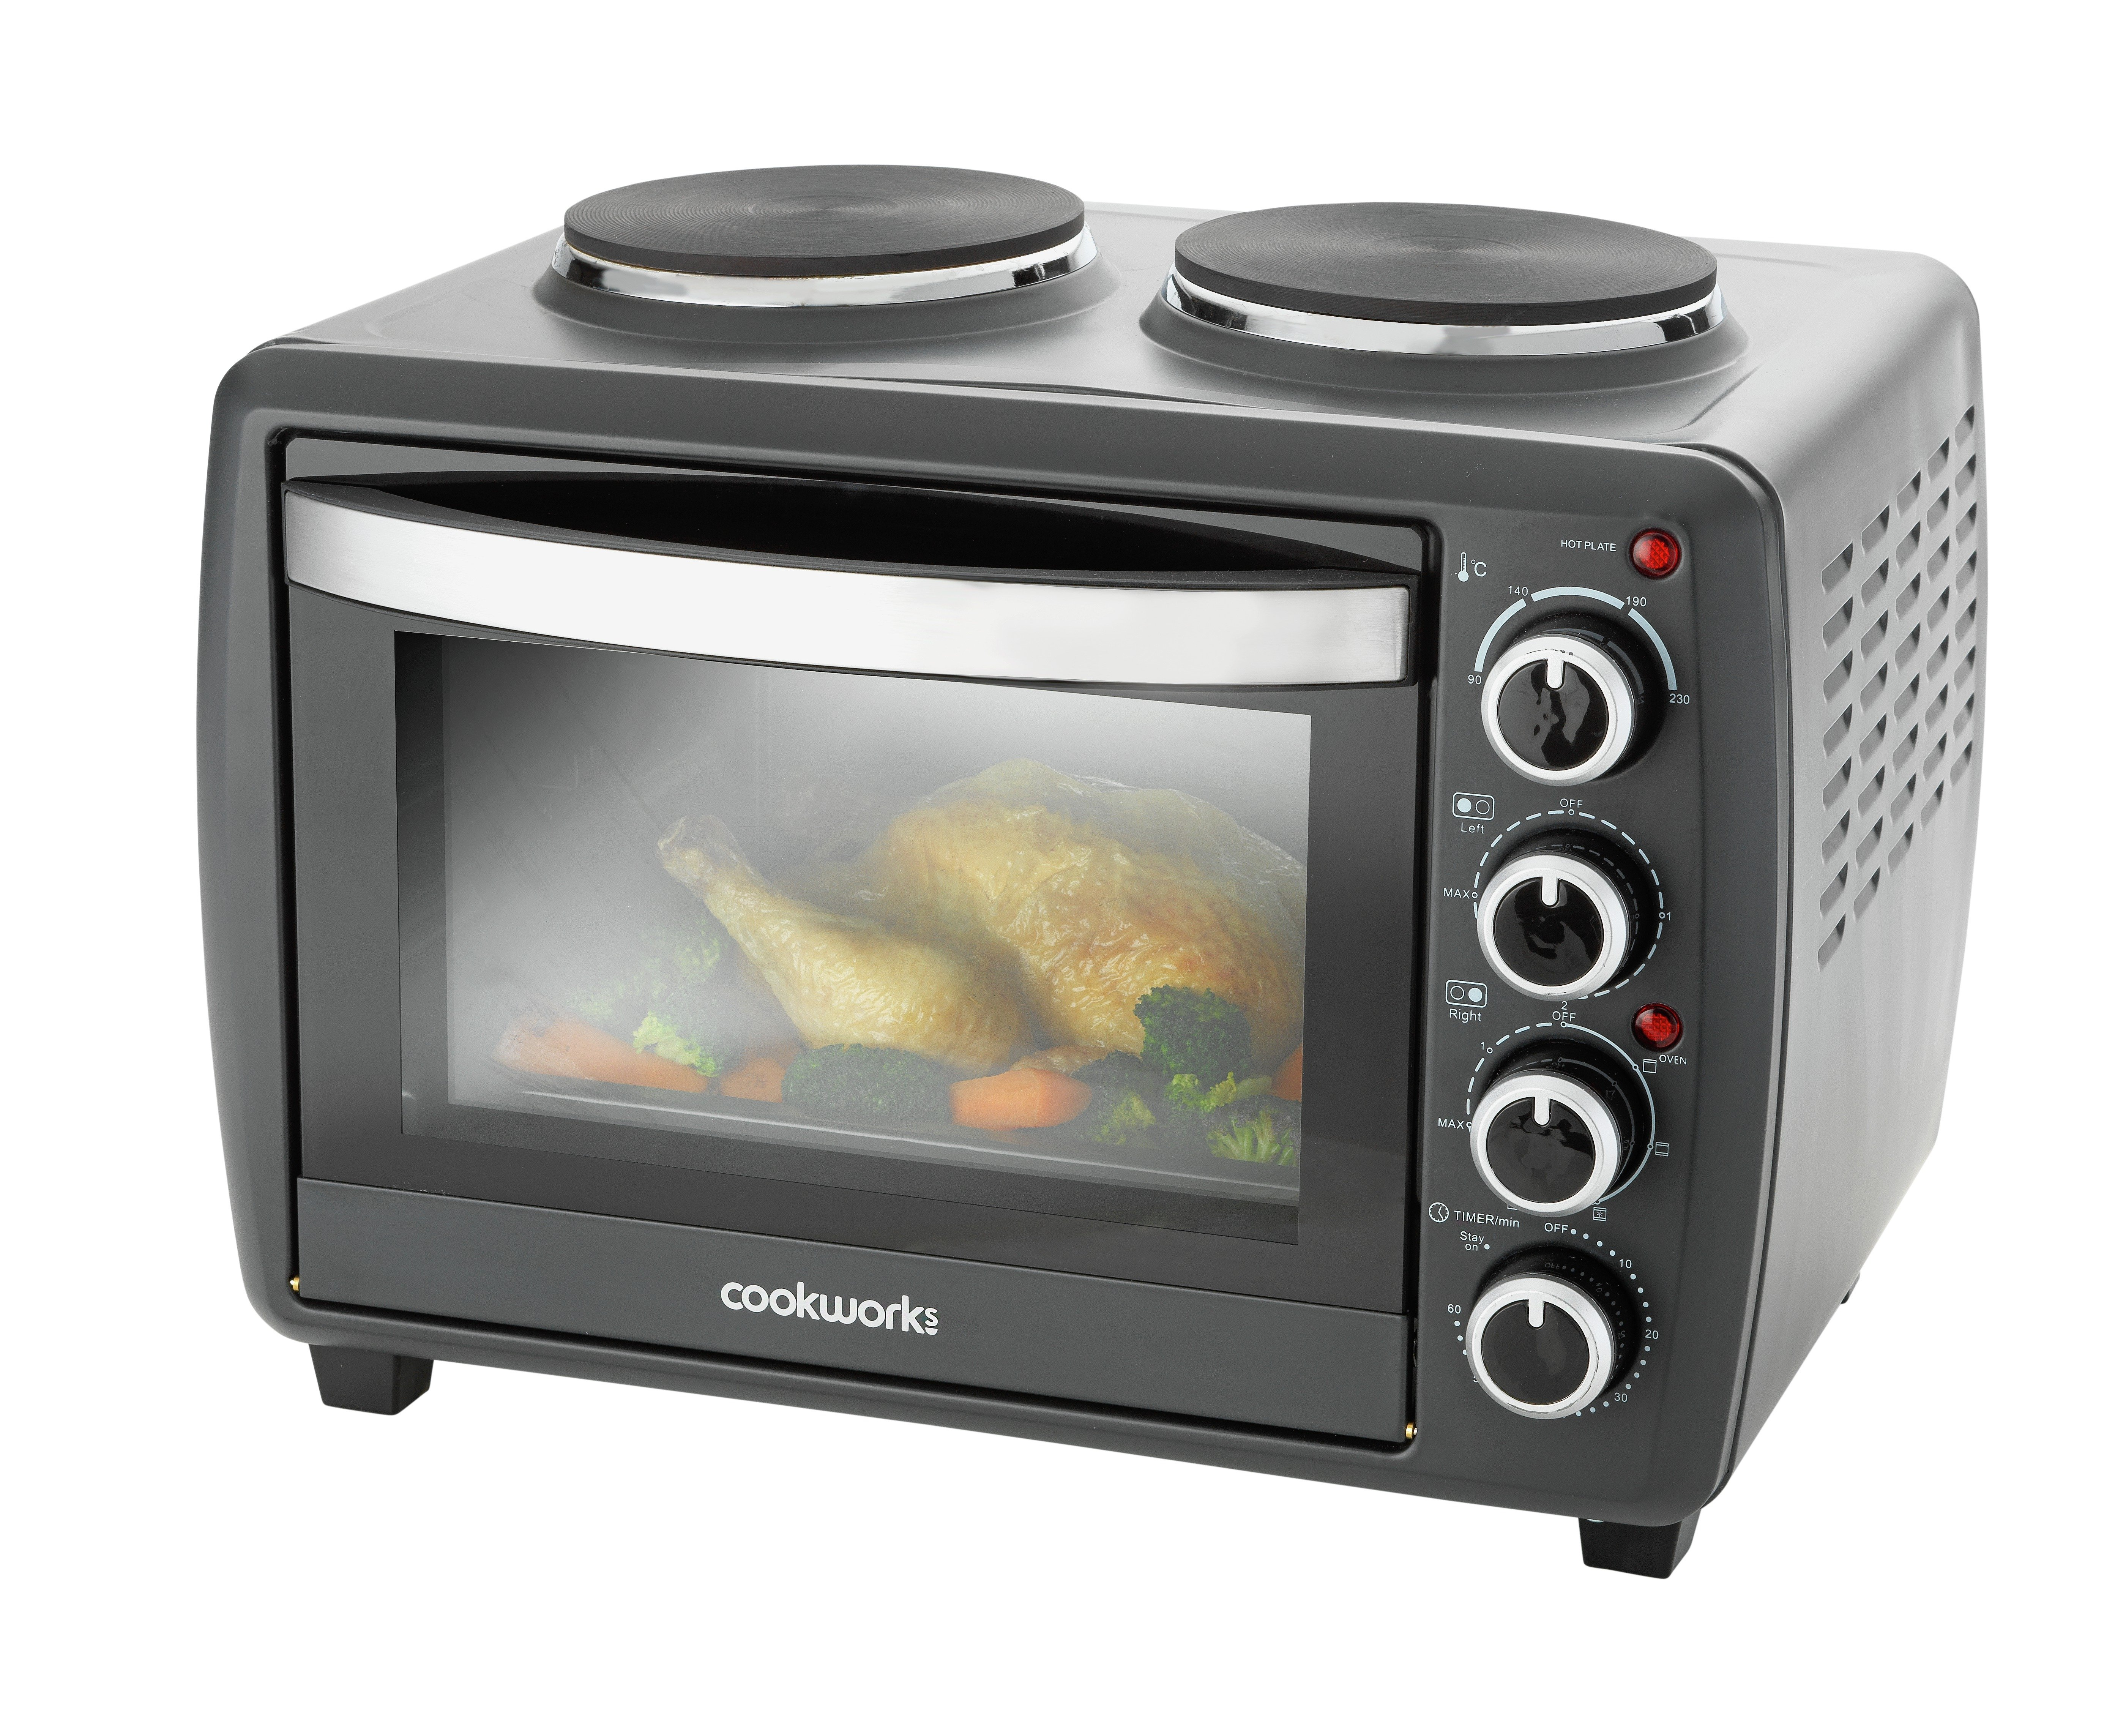 Image of Cookworks 28L Mini Oven with Hob